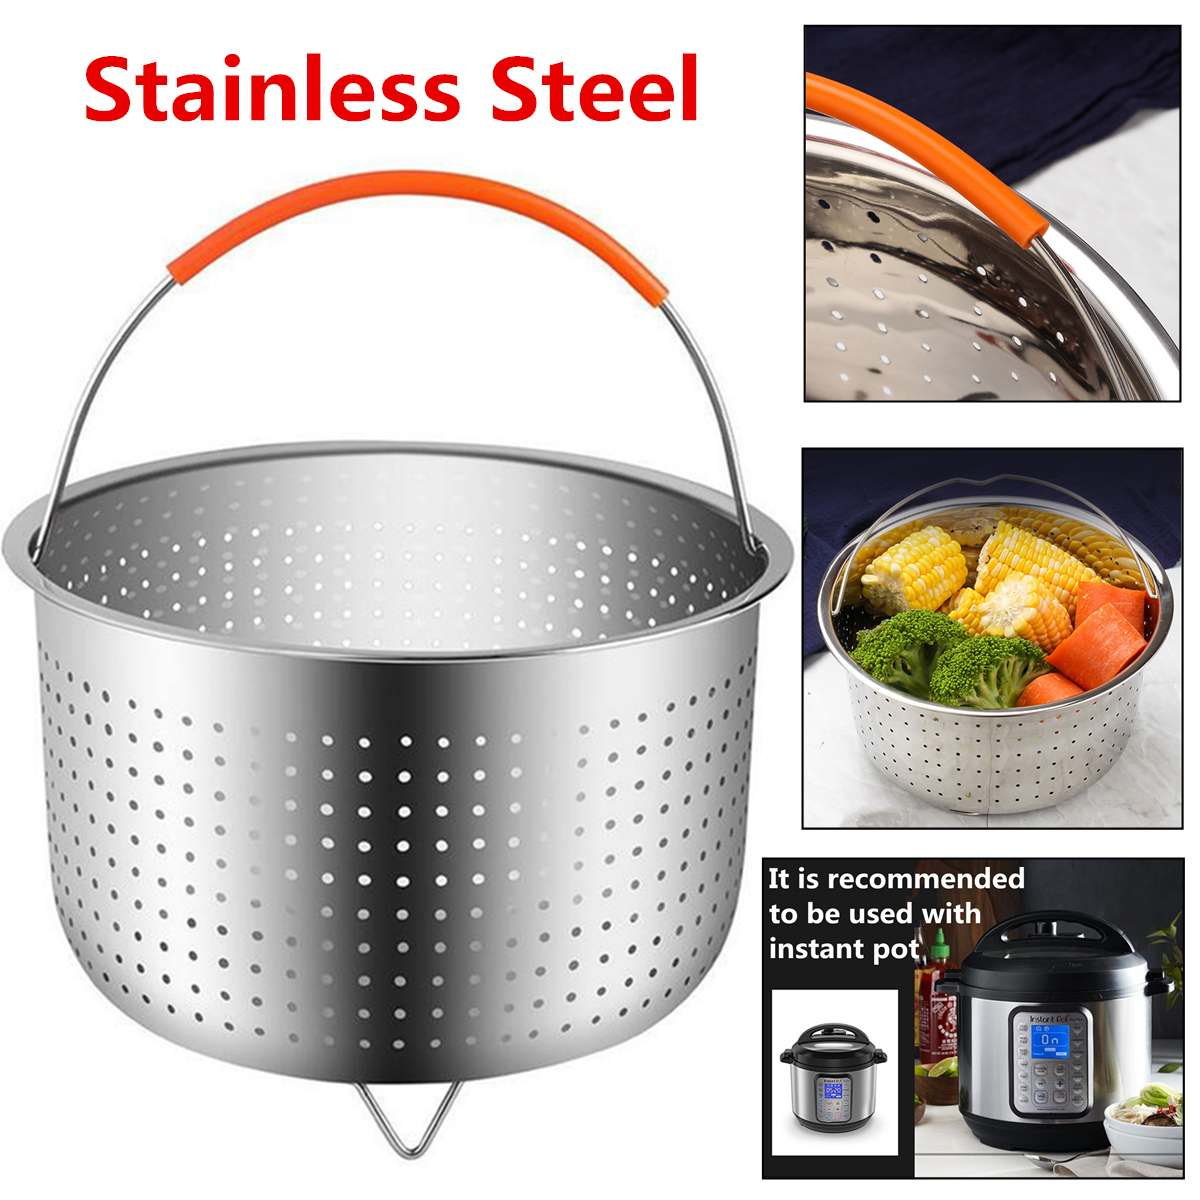 Stainless Steel Steamer Rice Cooker Fruits Steamer With Silicone Handle Kitchen Colander Steamer Instant Pot Steam Basket